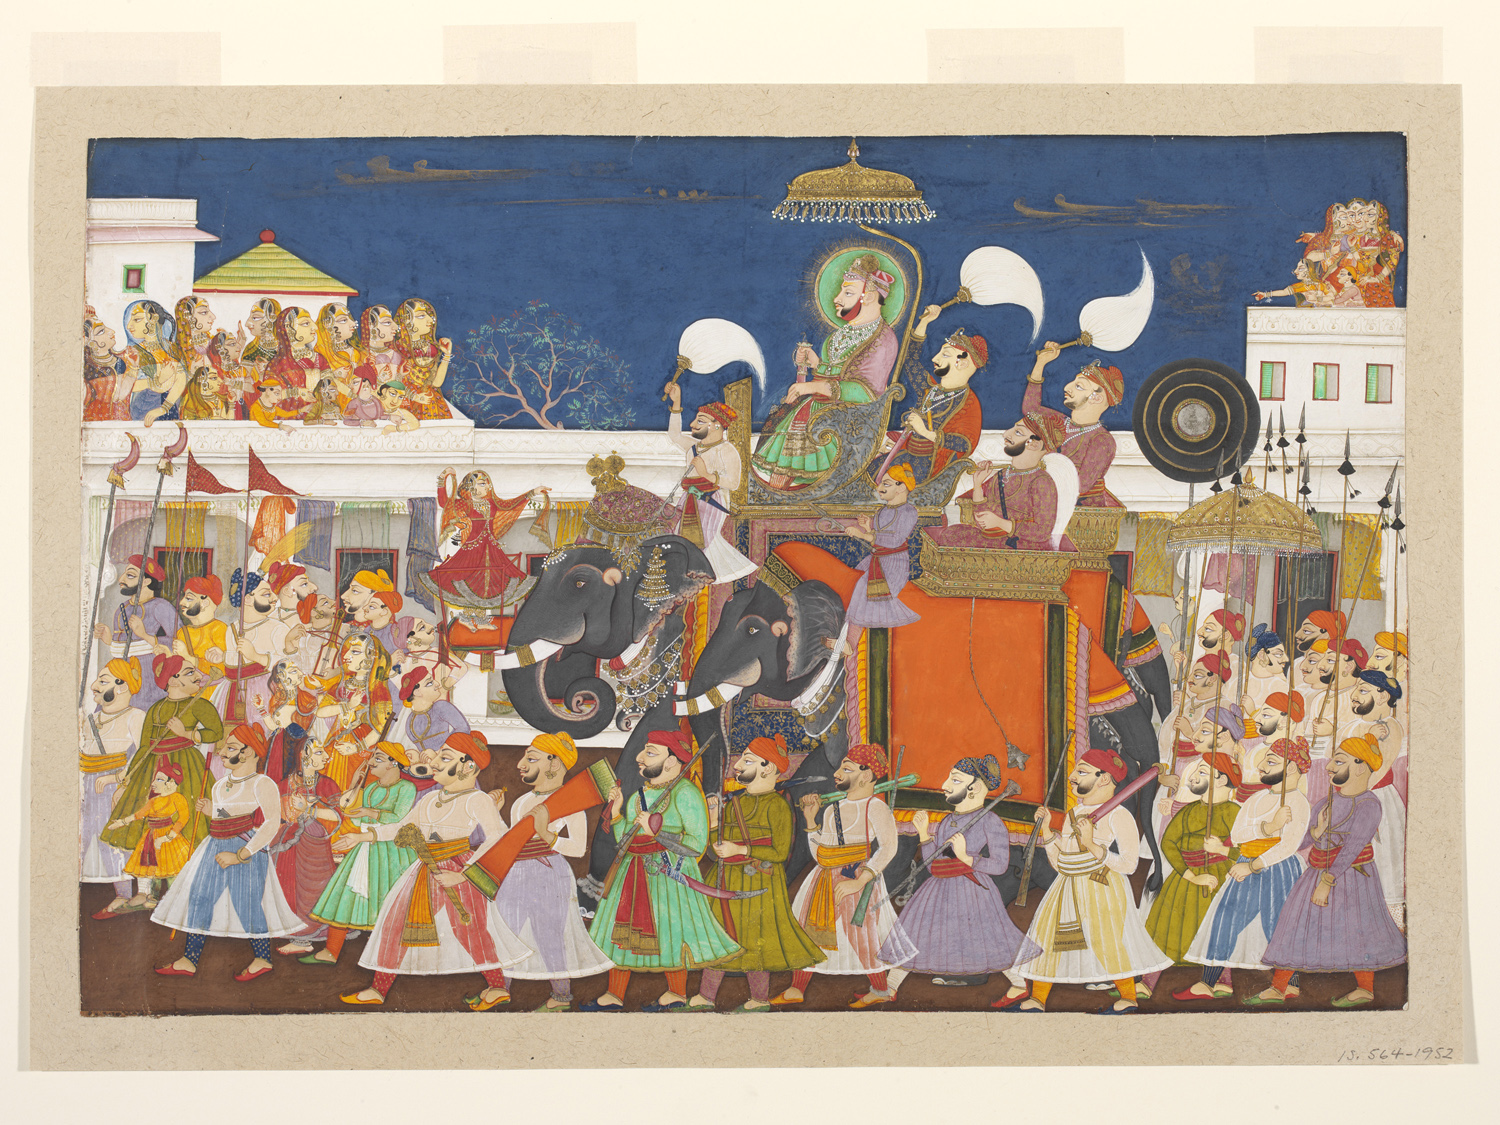 MAHARAJA: THE SPLENDOR OF INDIA'S ROYAL COURTS at The Field Museum in Chicago by Adrienne Garnett